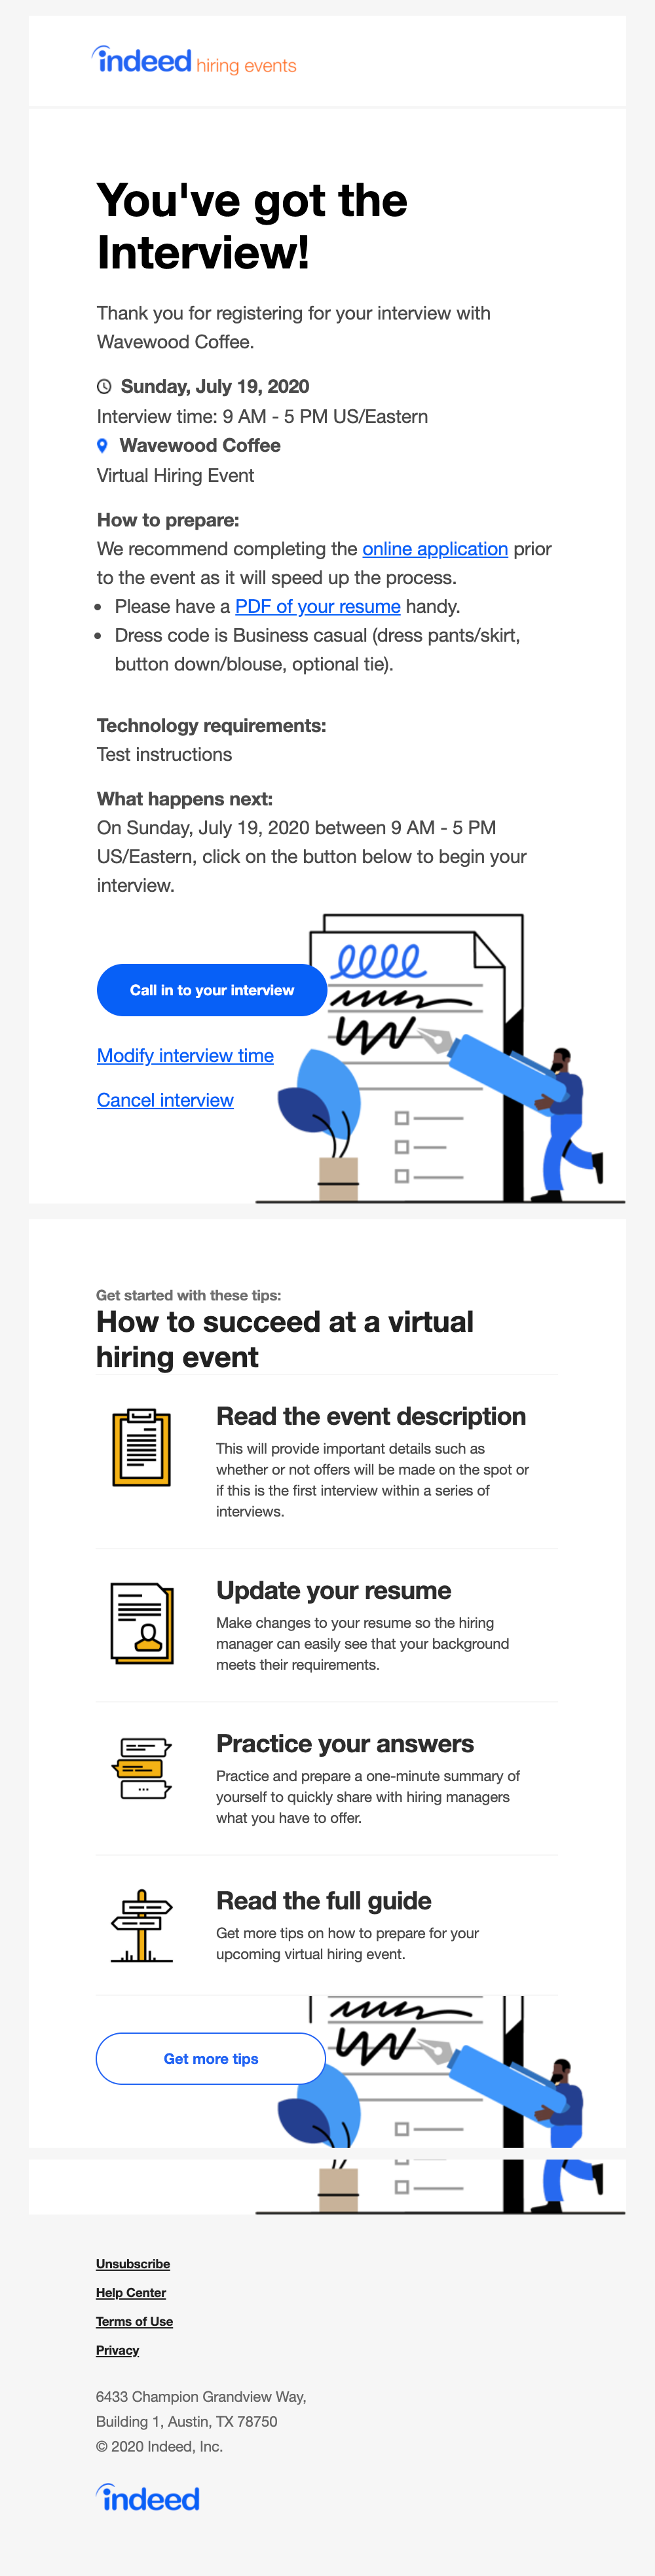 hiring events rsvp confirmation email